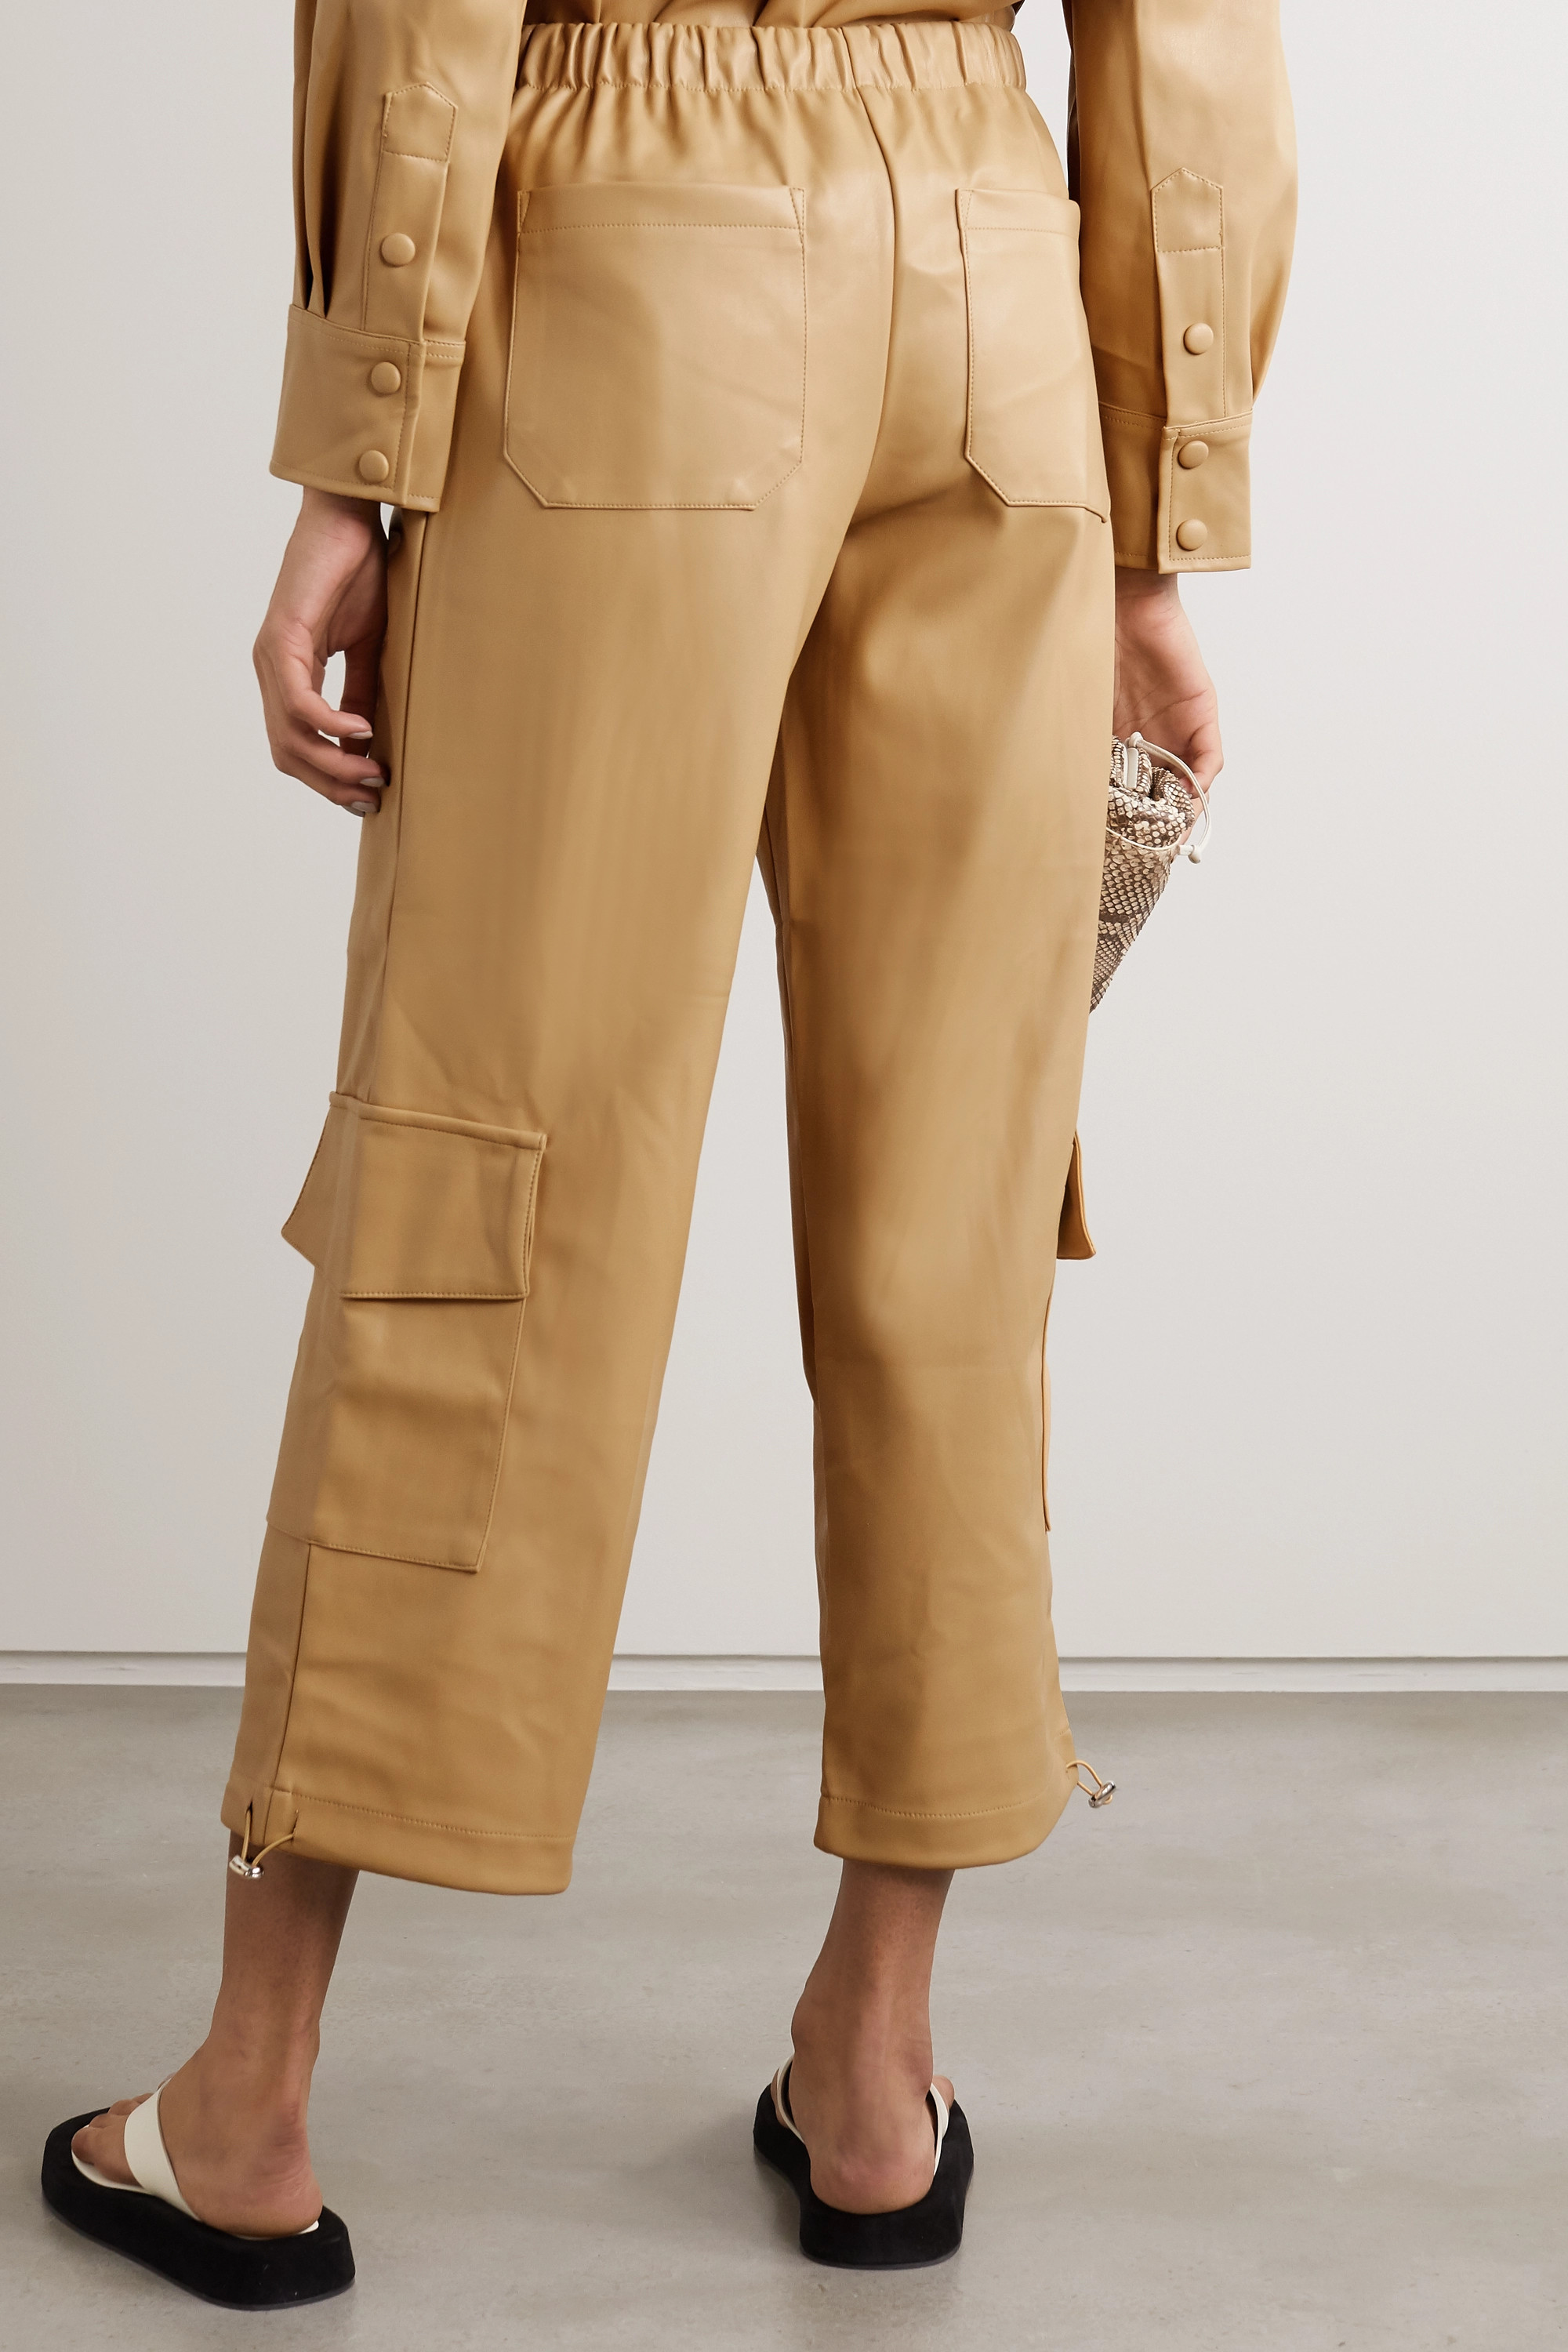 Frankie Shop Yoyo faux leather tapered pants